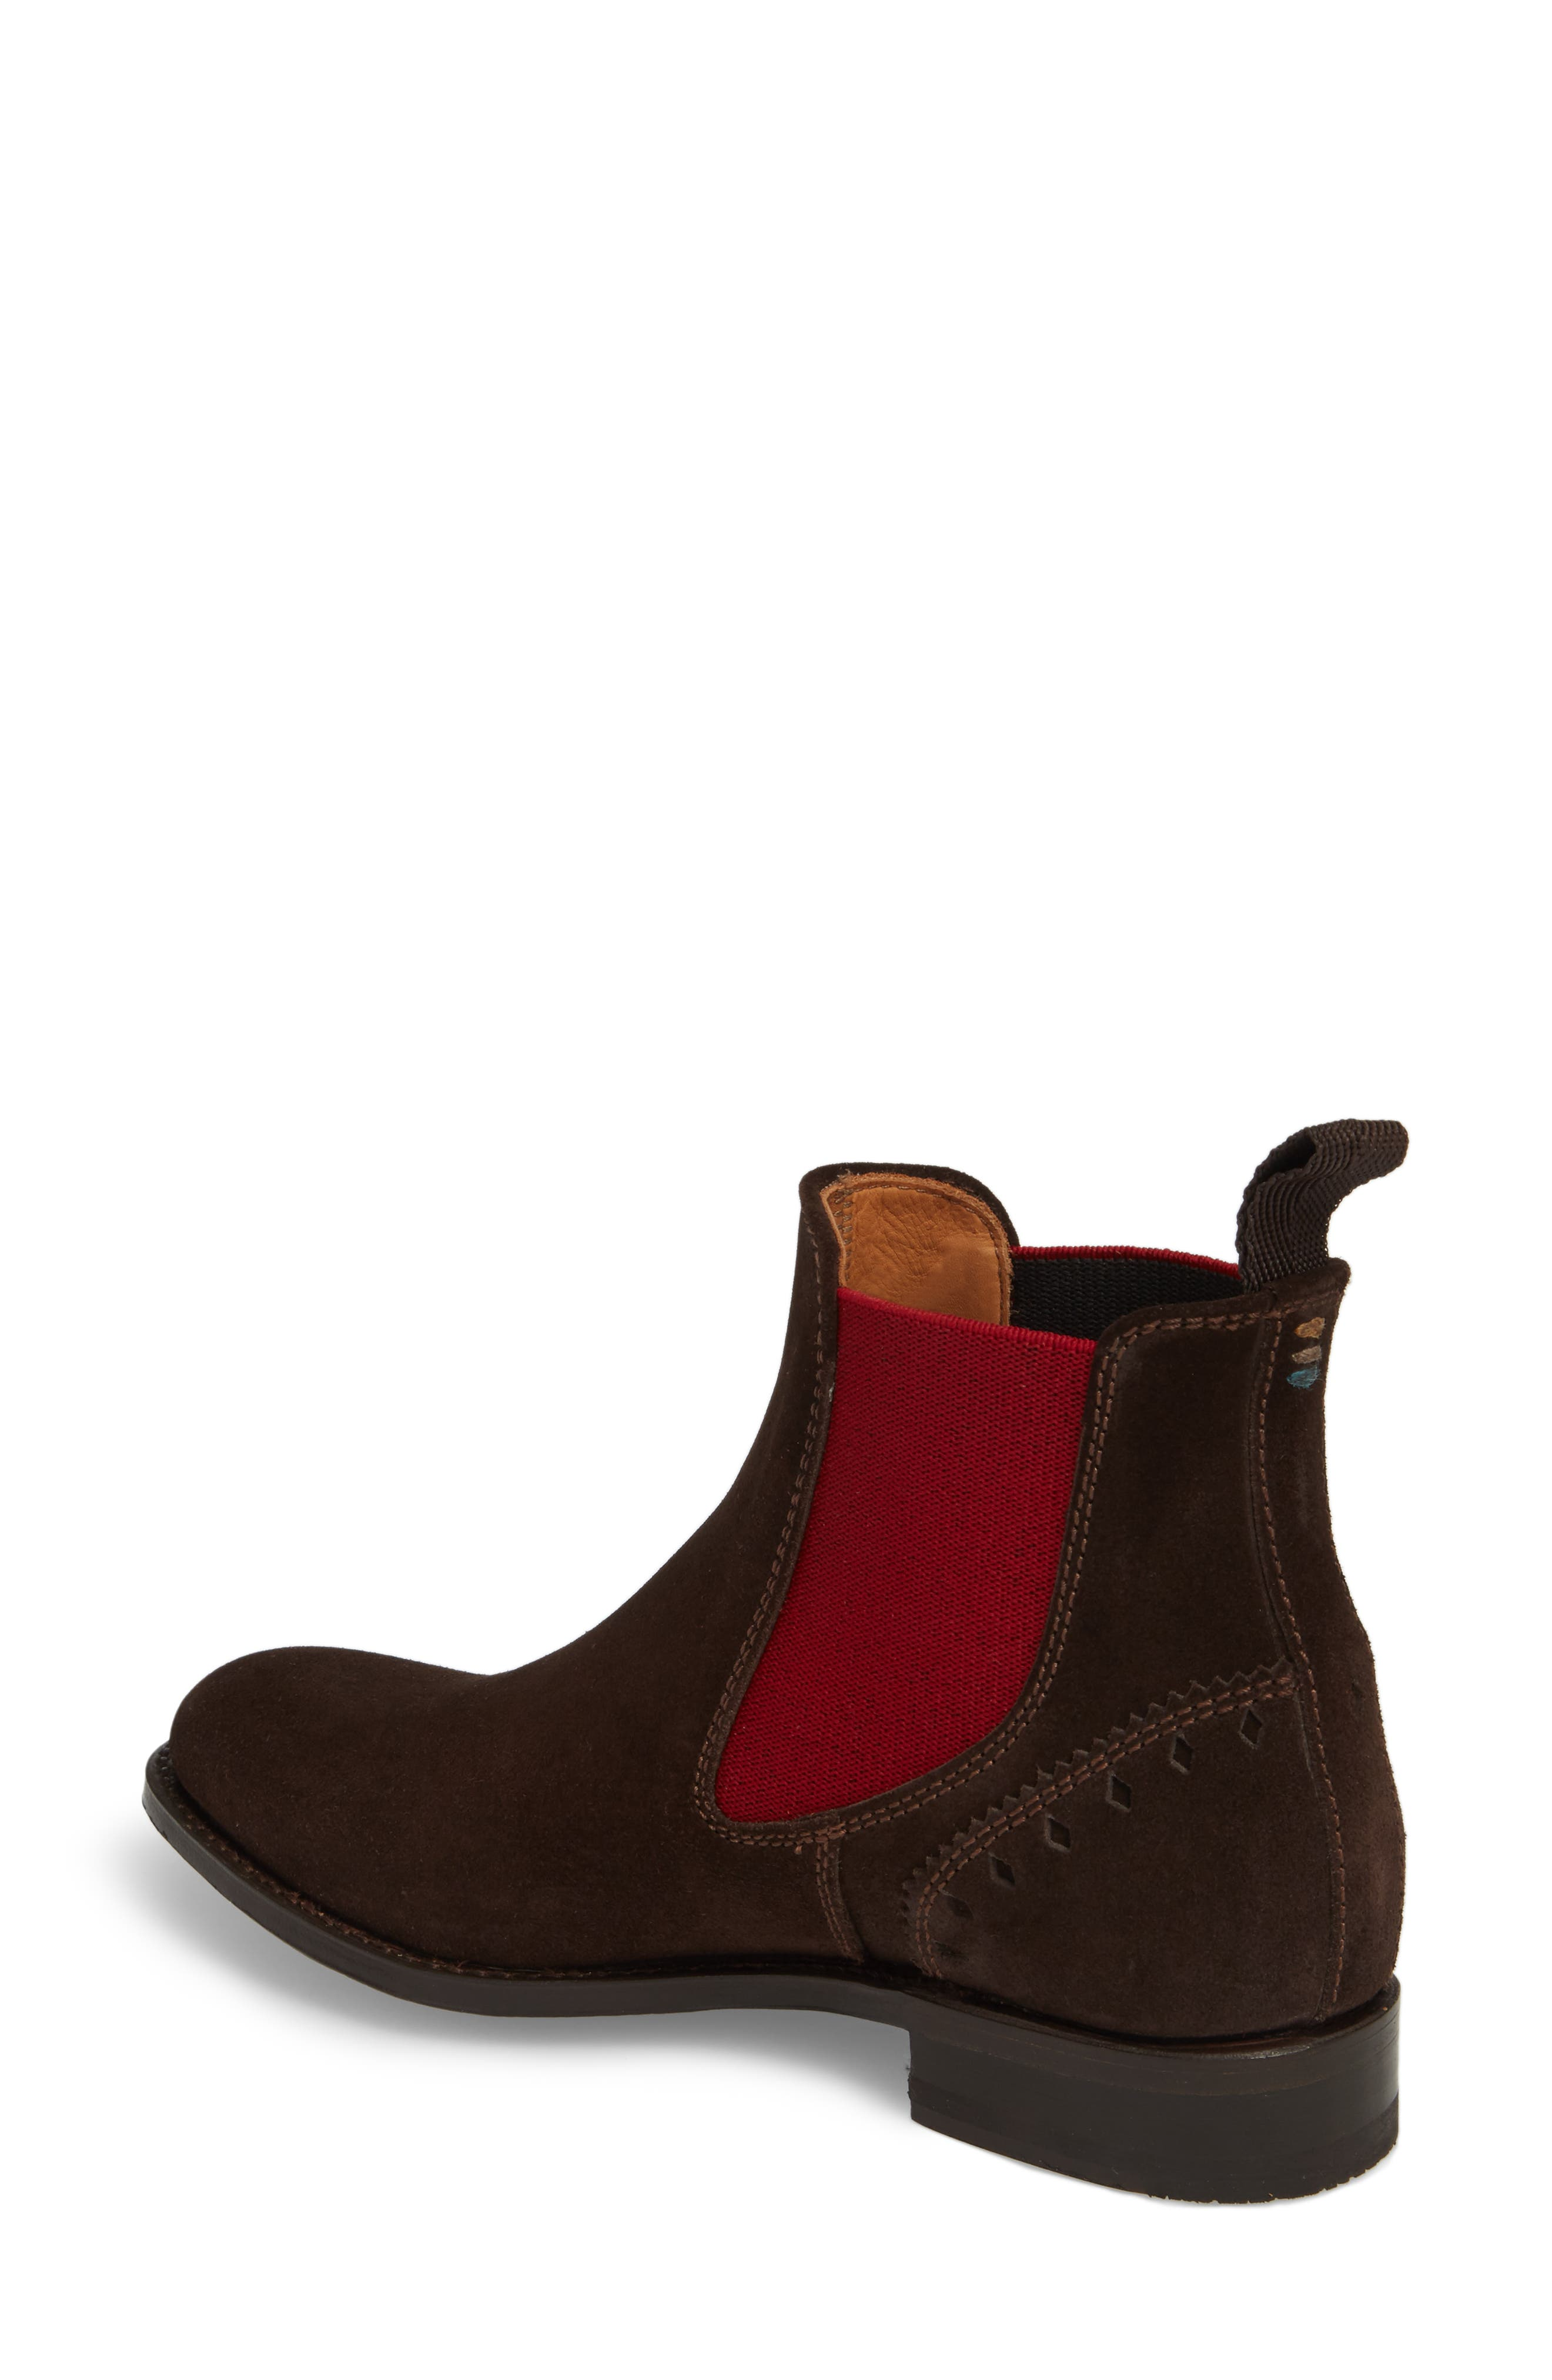 Benissa Lux Chelsea Boot,                             Alternate thumbnail 2, color,                             Brown Suede